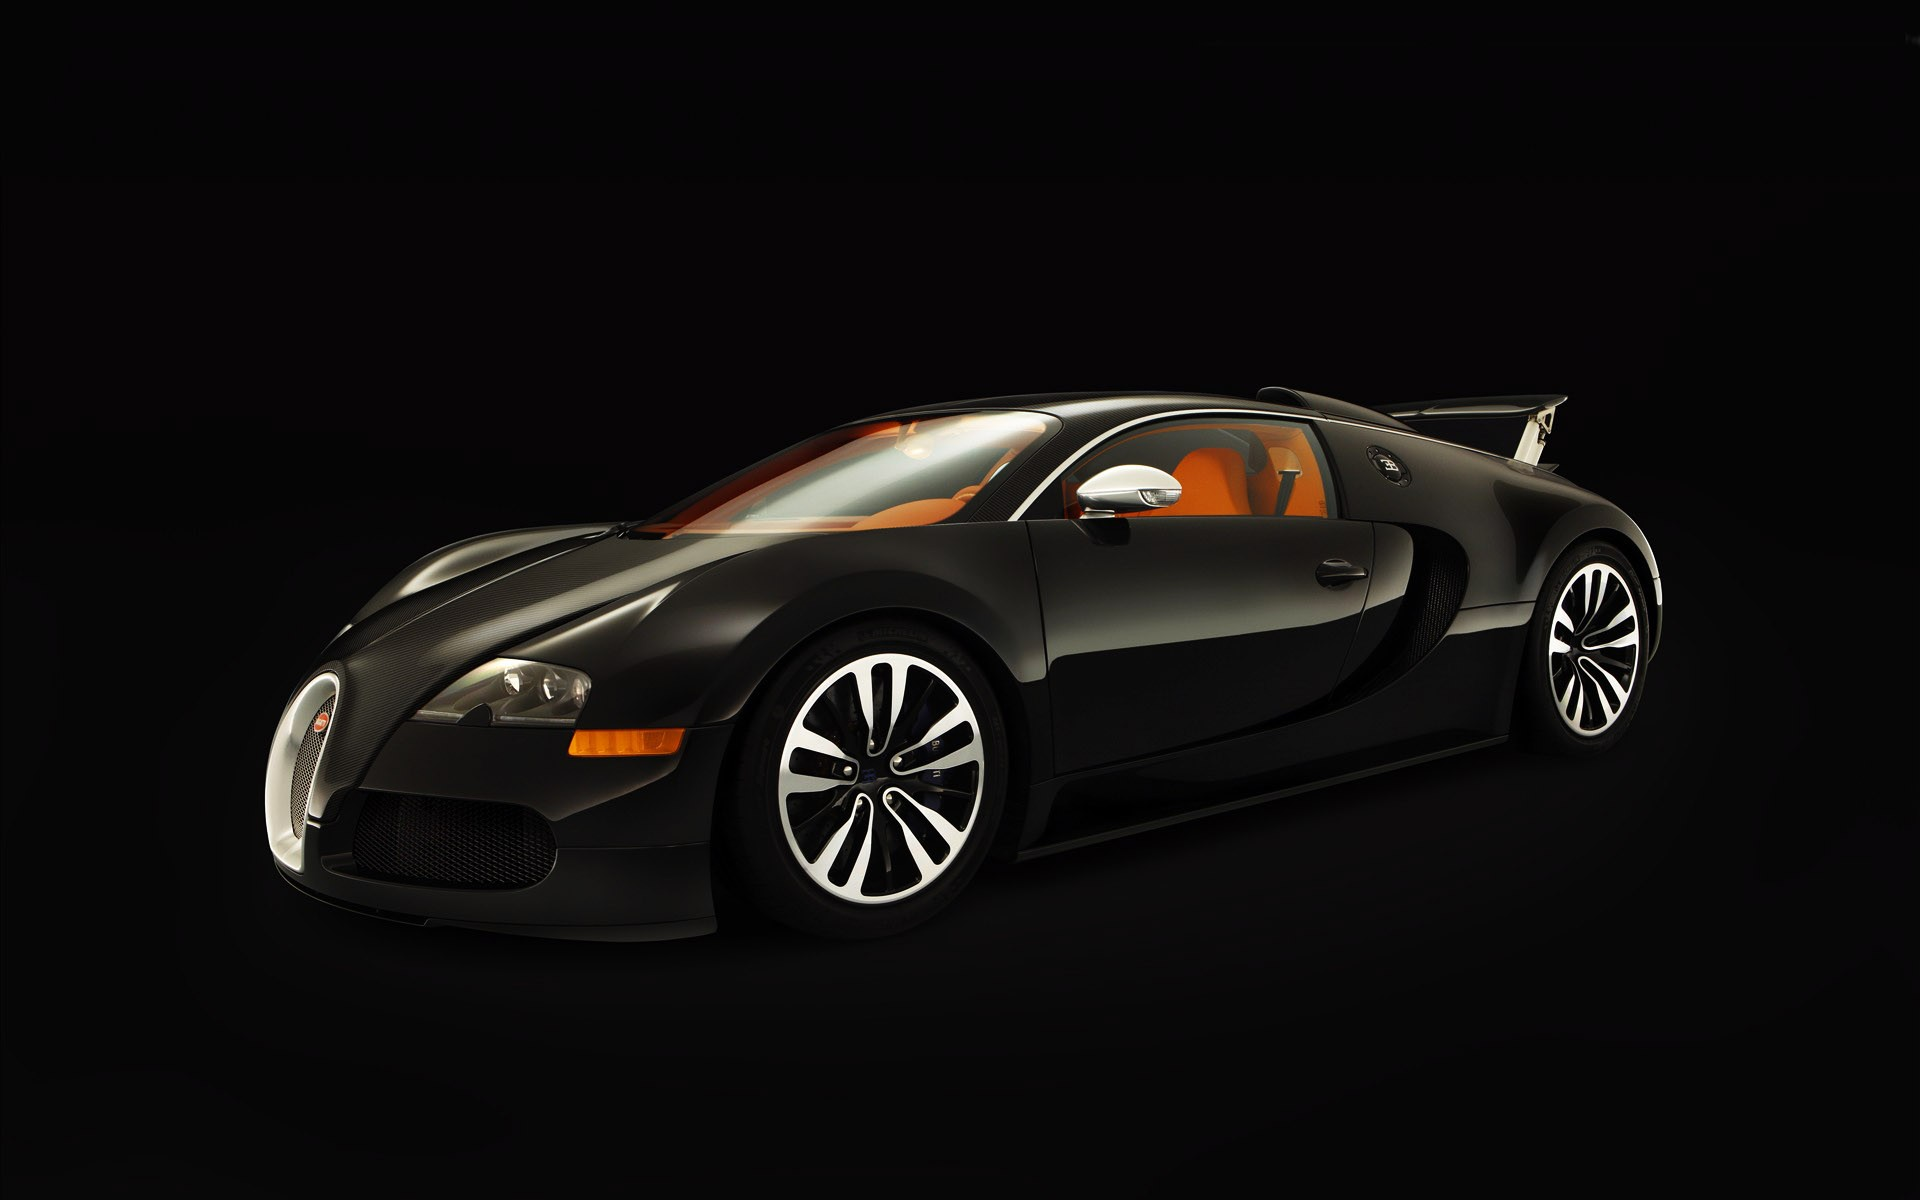 3D model of the Bugatti Veyron, on a black background